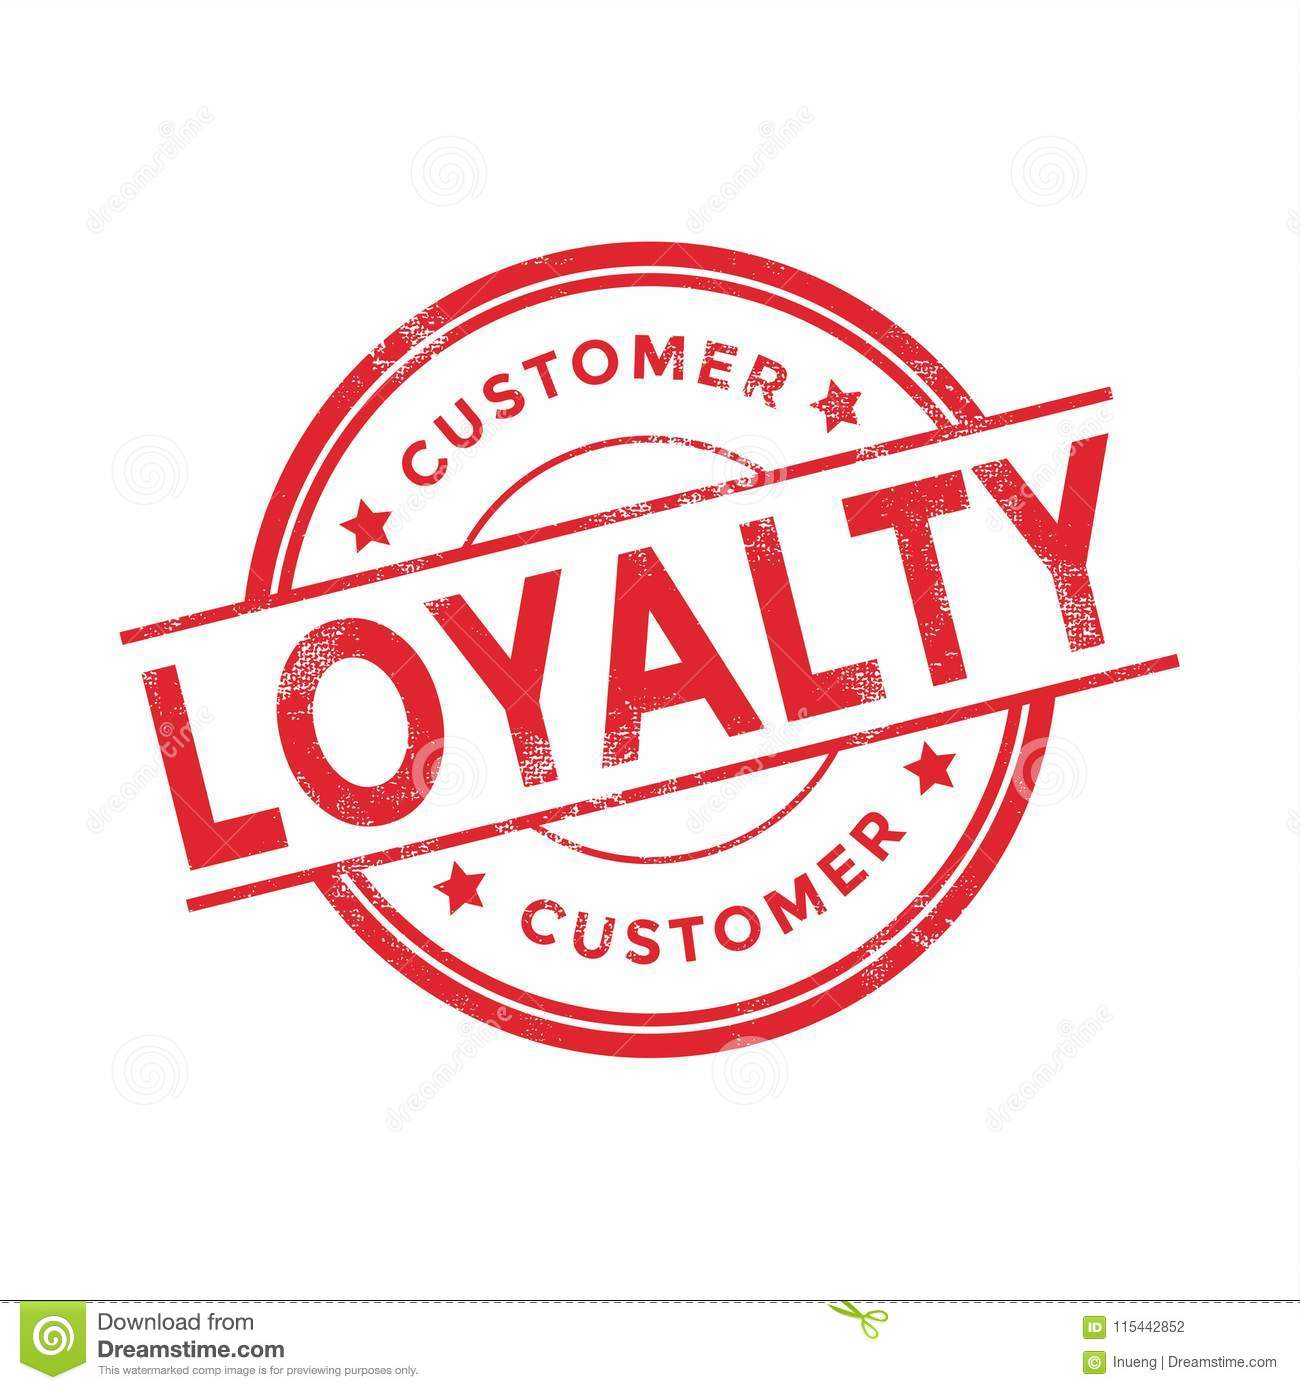 Customer Loyalty Red Rubber Stamp On White Background